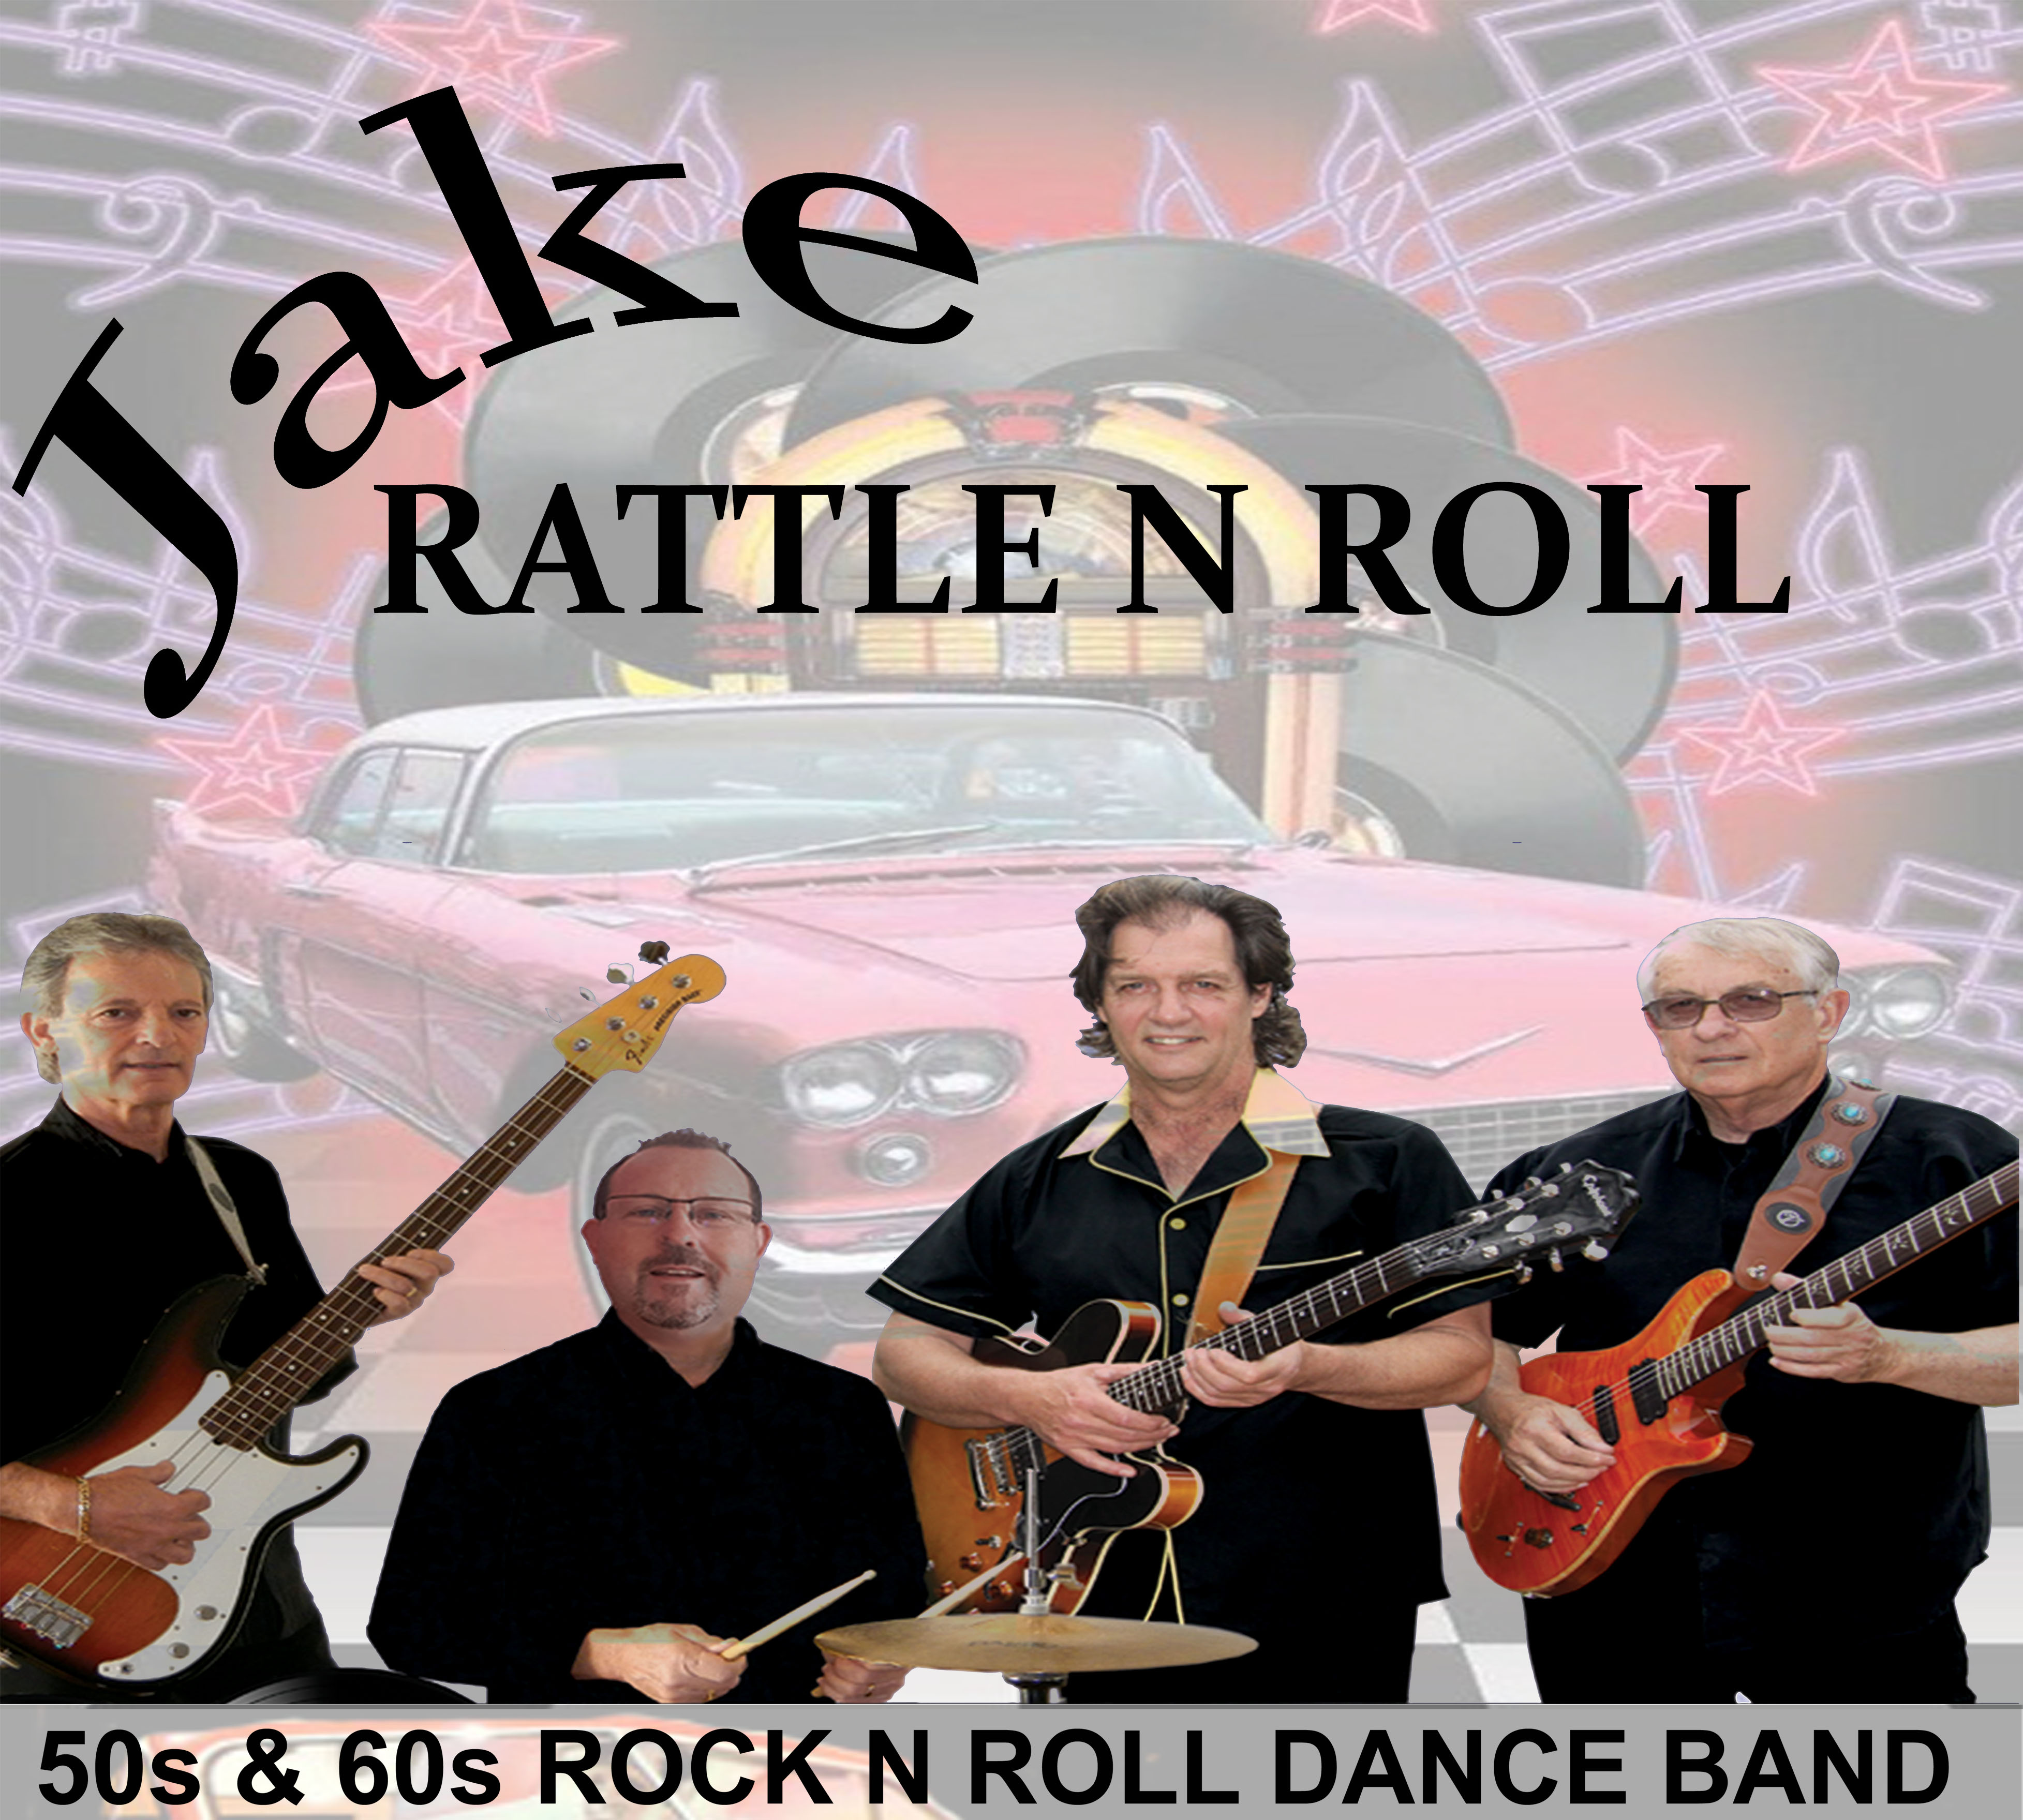 Jake Rattle 'n Roll » Fairplay Entertainment Music Booking Agency